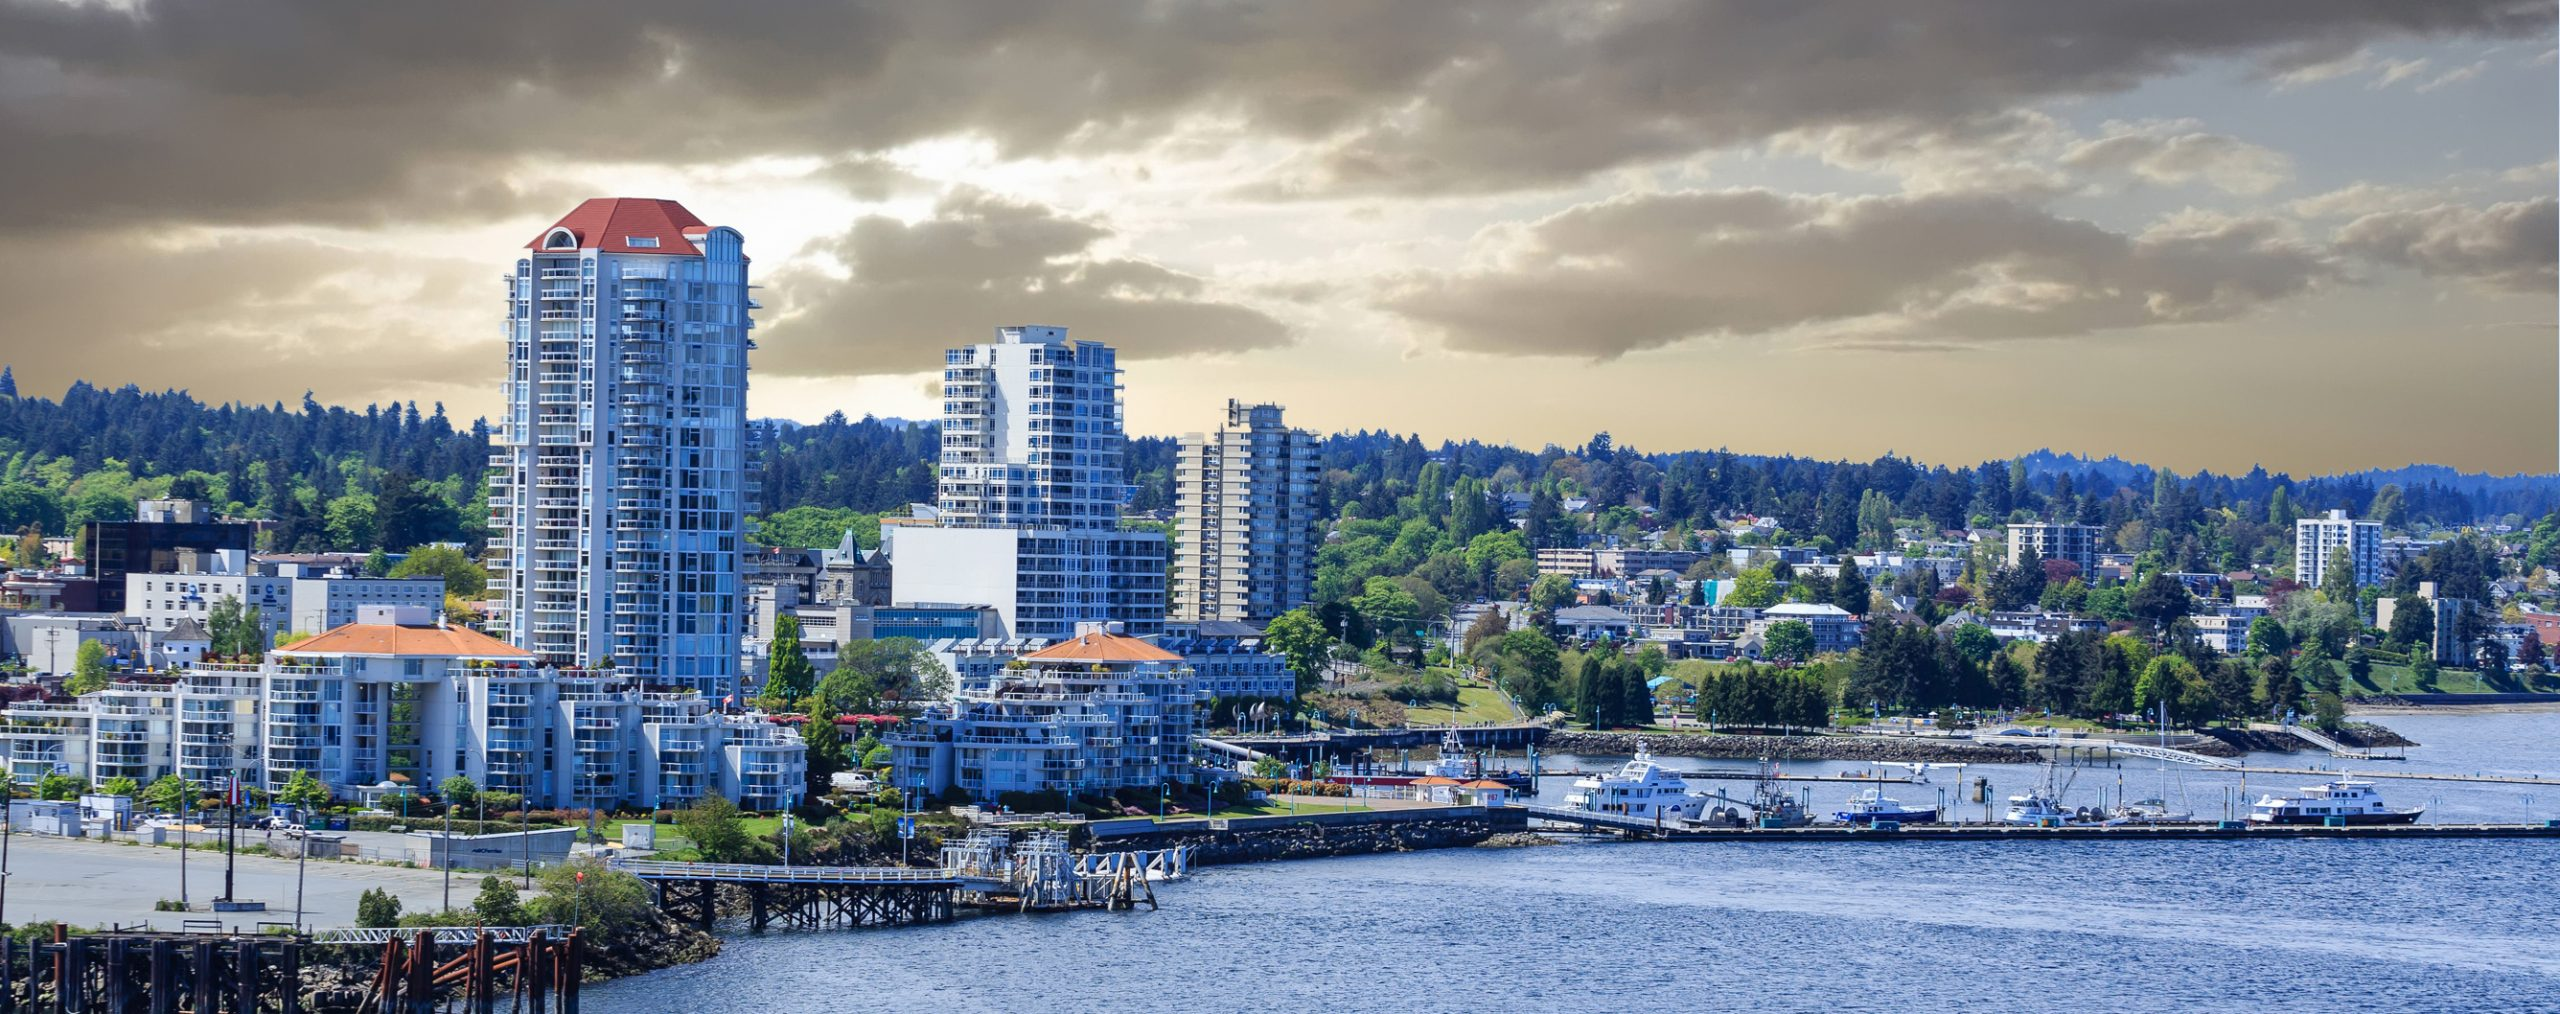 Nanaimo and Logging at Sunrise to end poverty and homelessness in BC